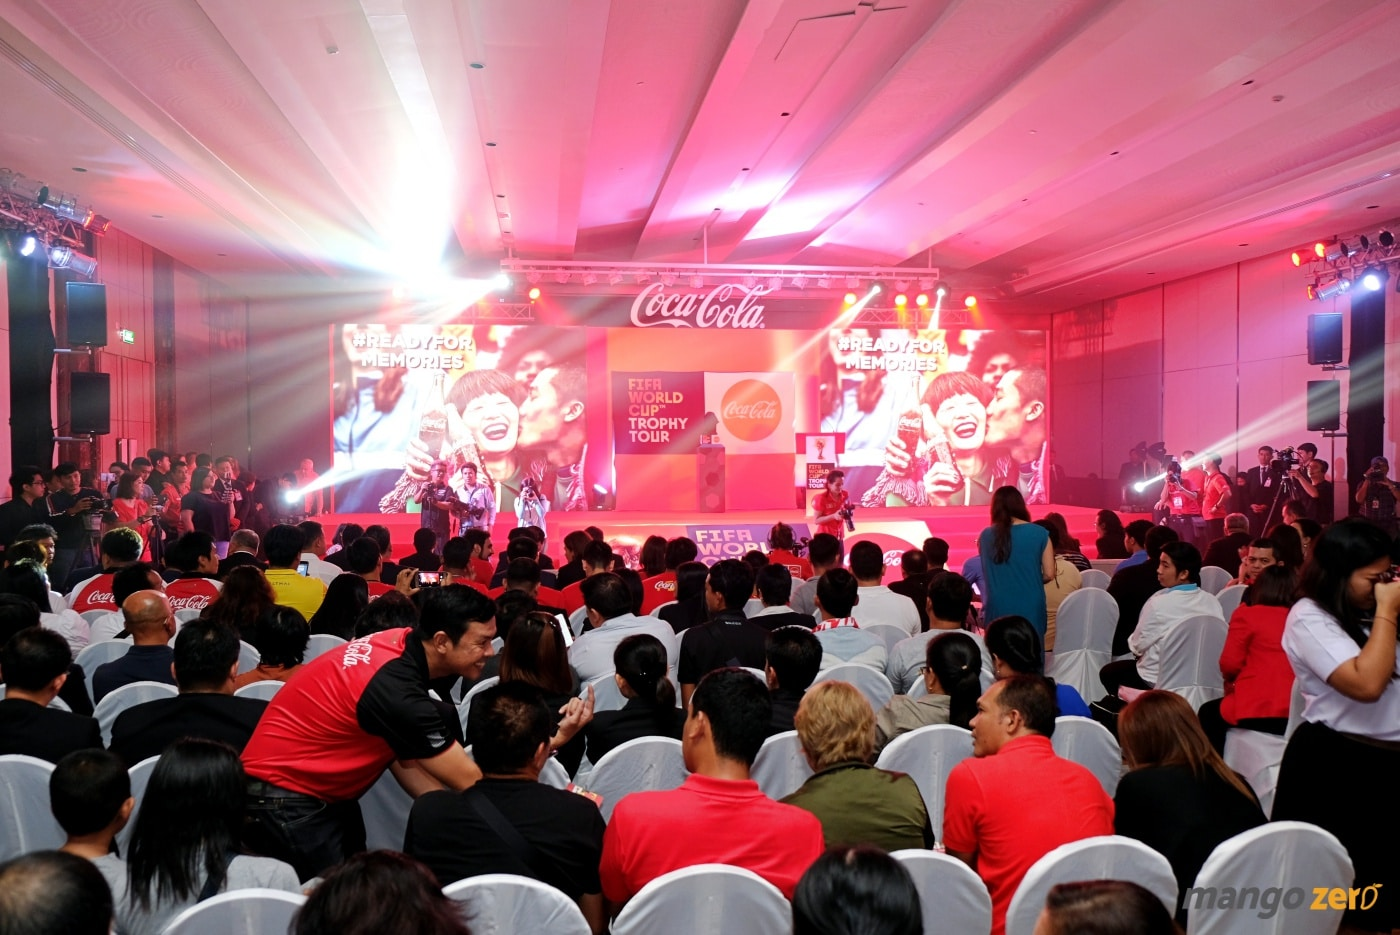 2018-fifa-world-cup-trophy-tour-by-coca-cola-at-phuket-11